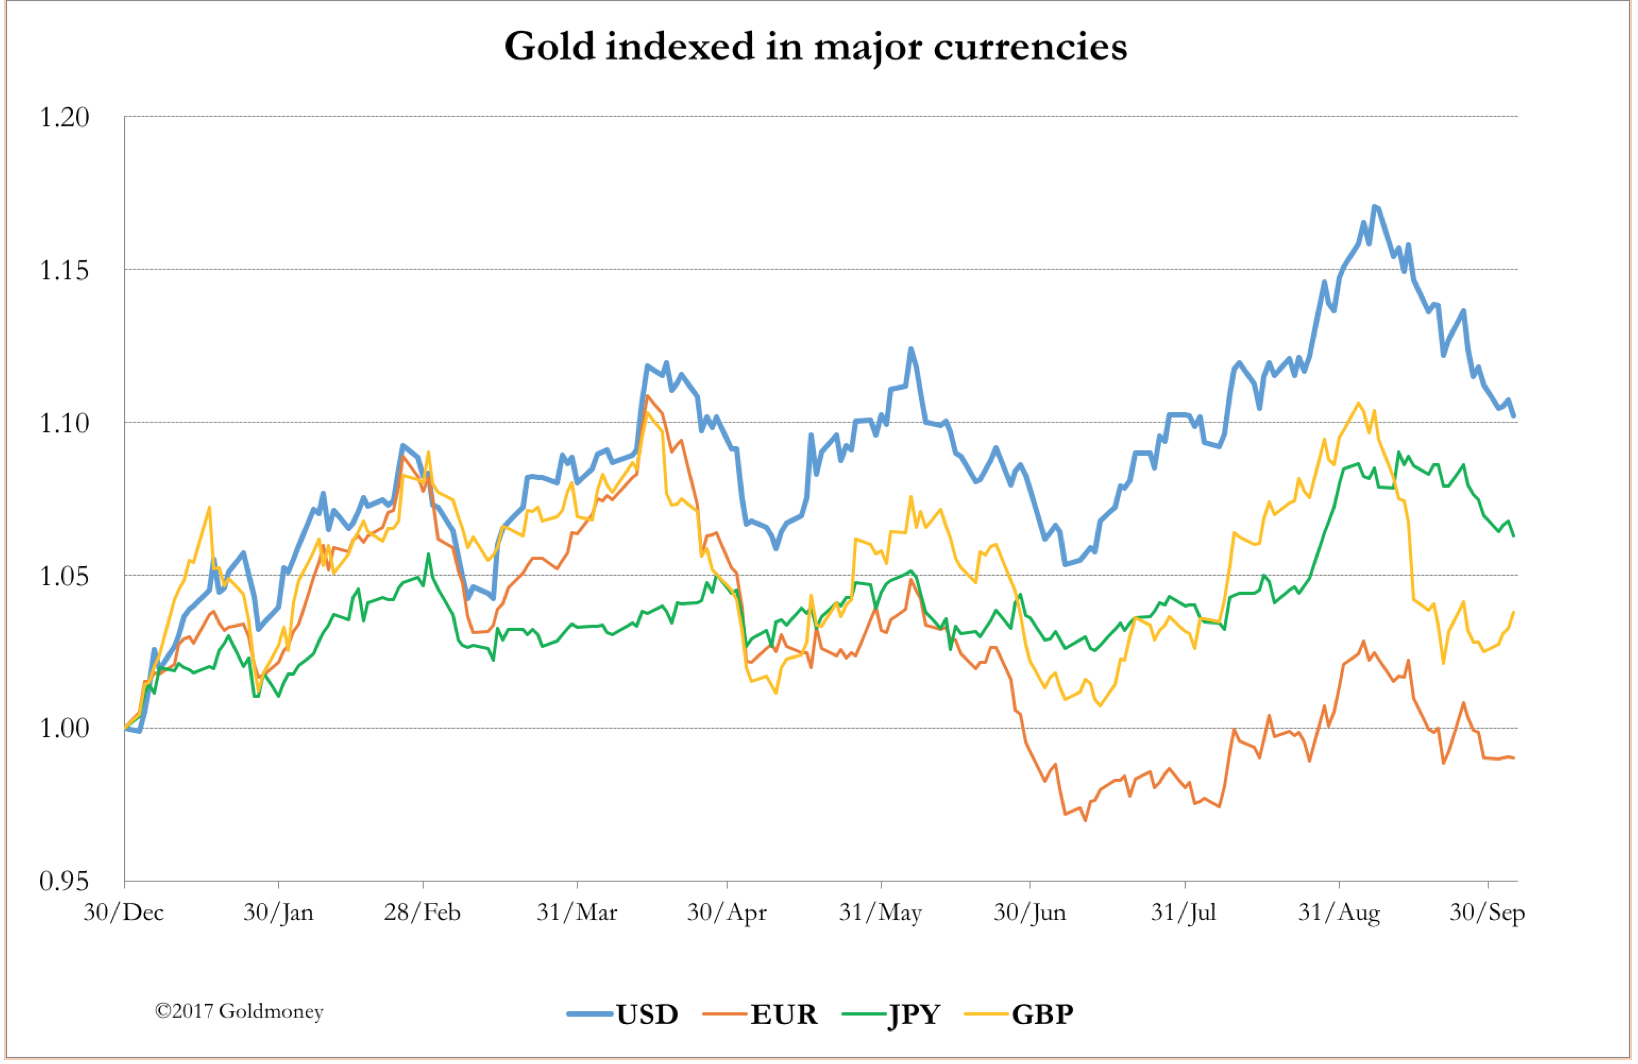 Gold price in various currencies